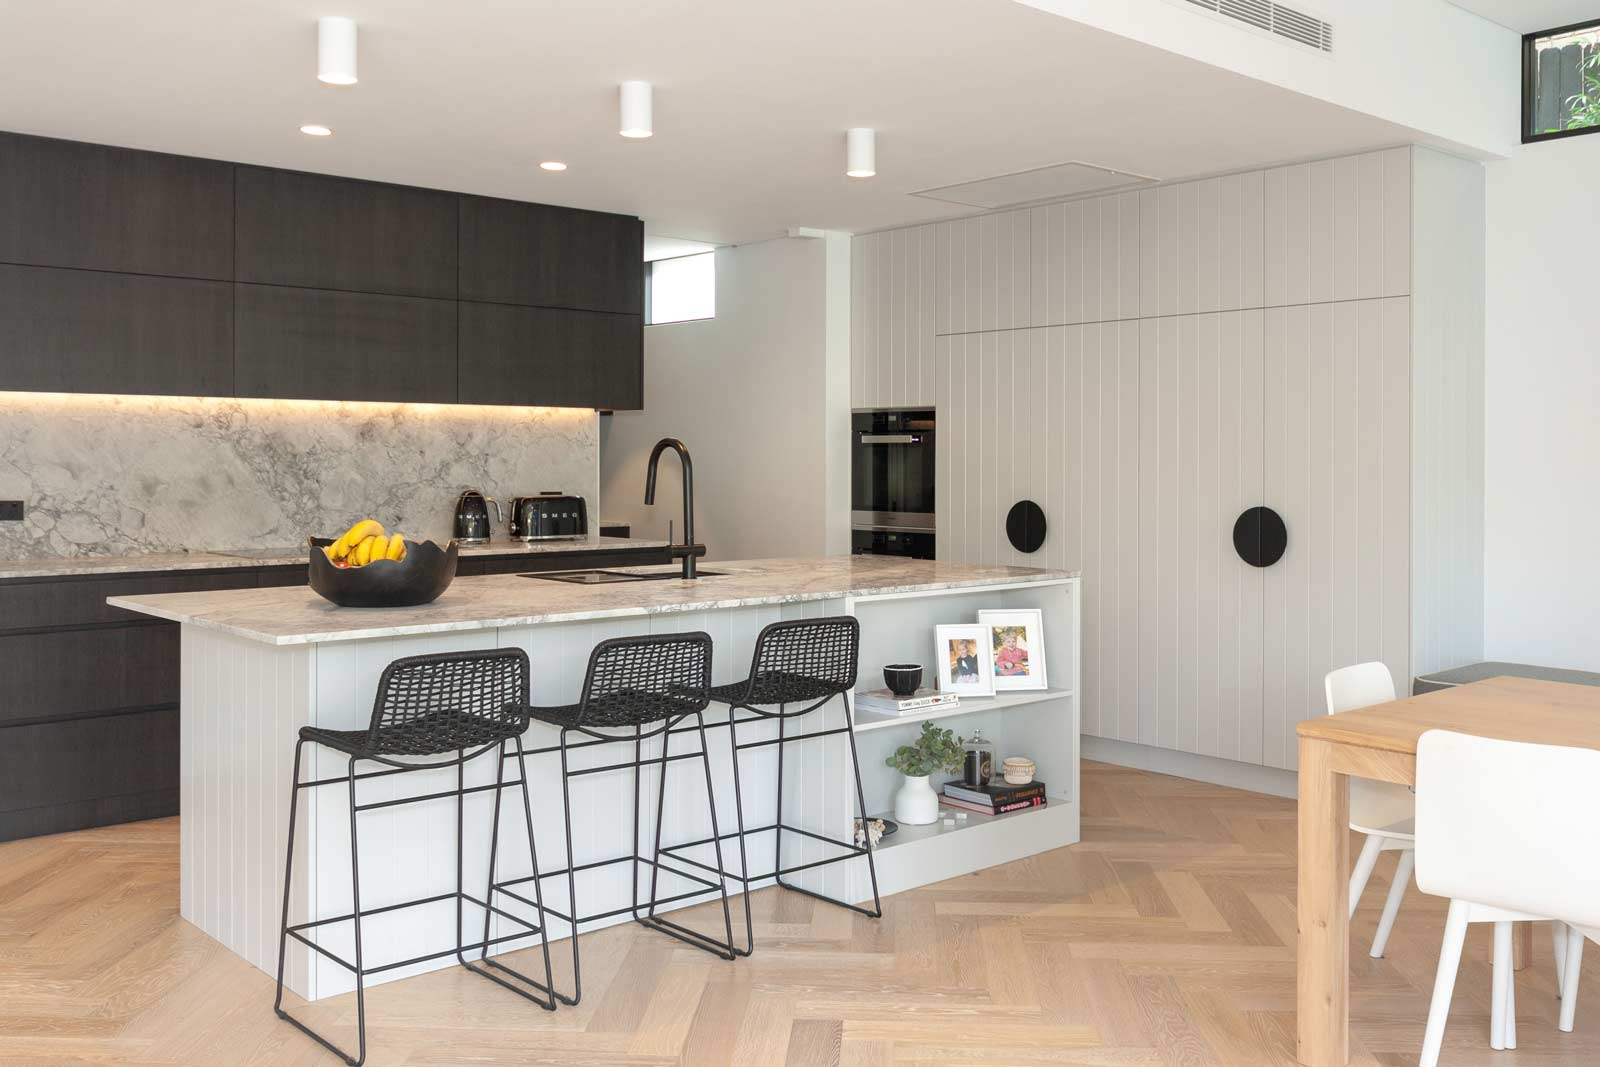 Dulux polyurethane v-groove cabinets, dark grey kitchen design with Polytec feature cabinets, miele and smeg appliances, butlers pantry and custom banquet seating